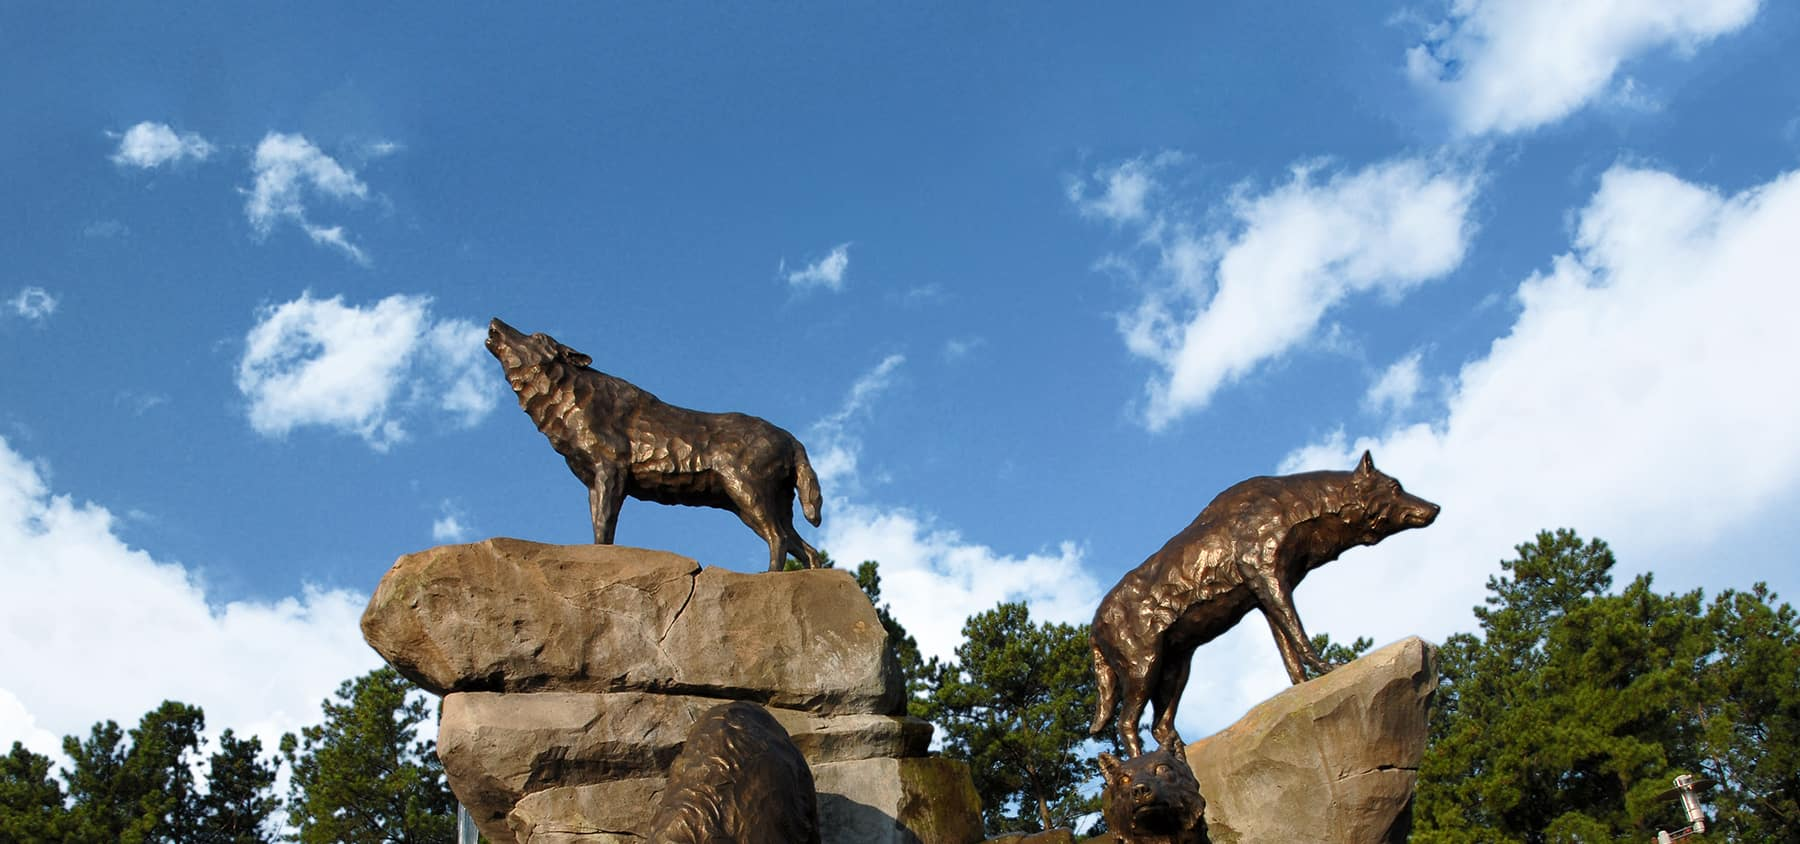 Wolf statues with blue sky in the background